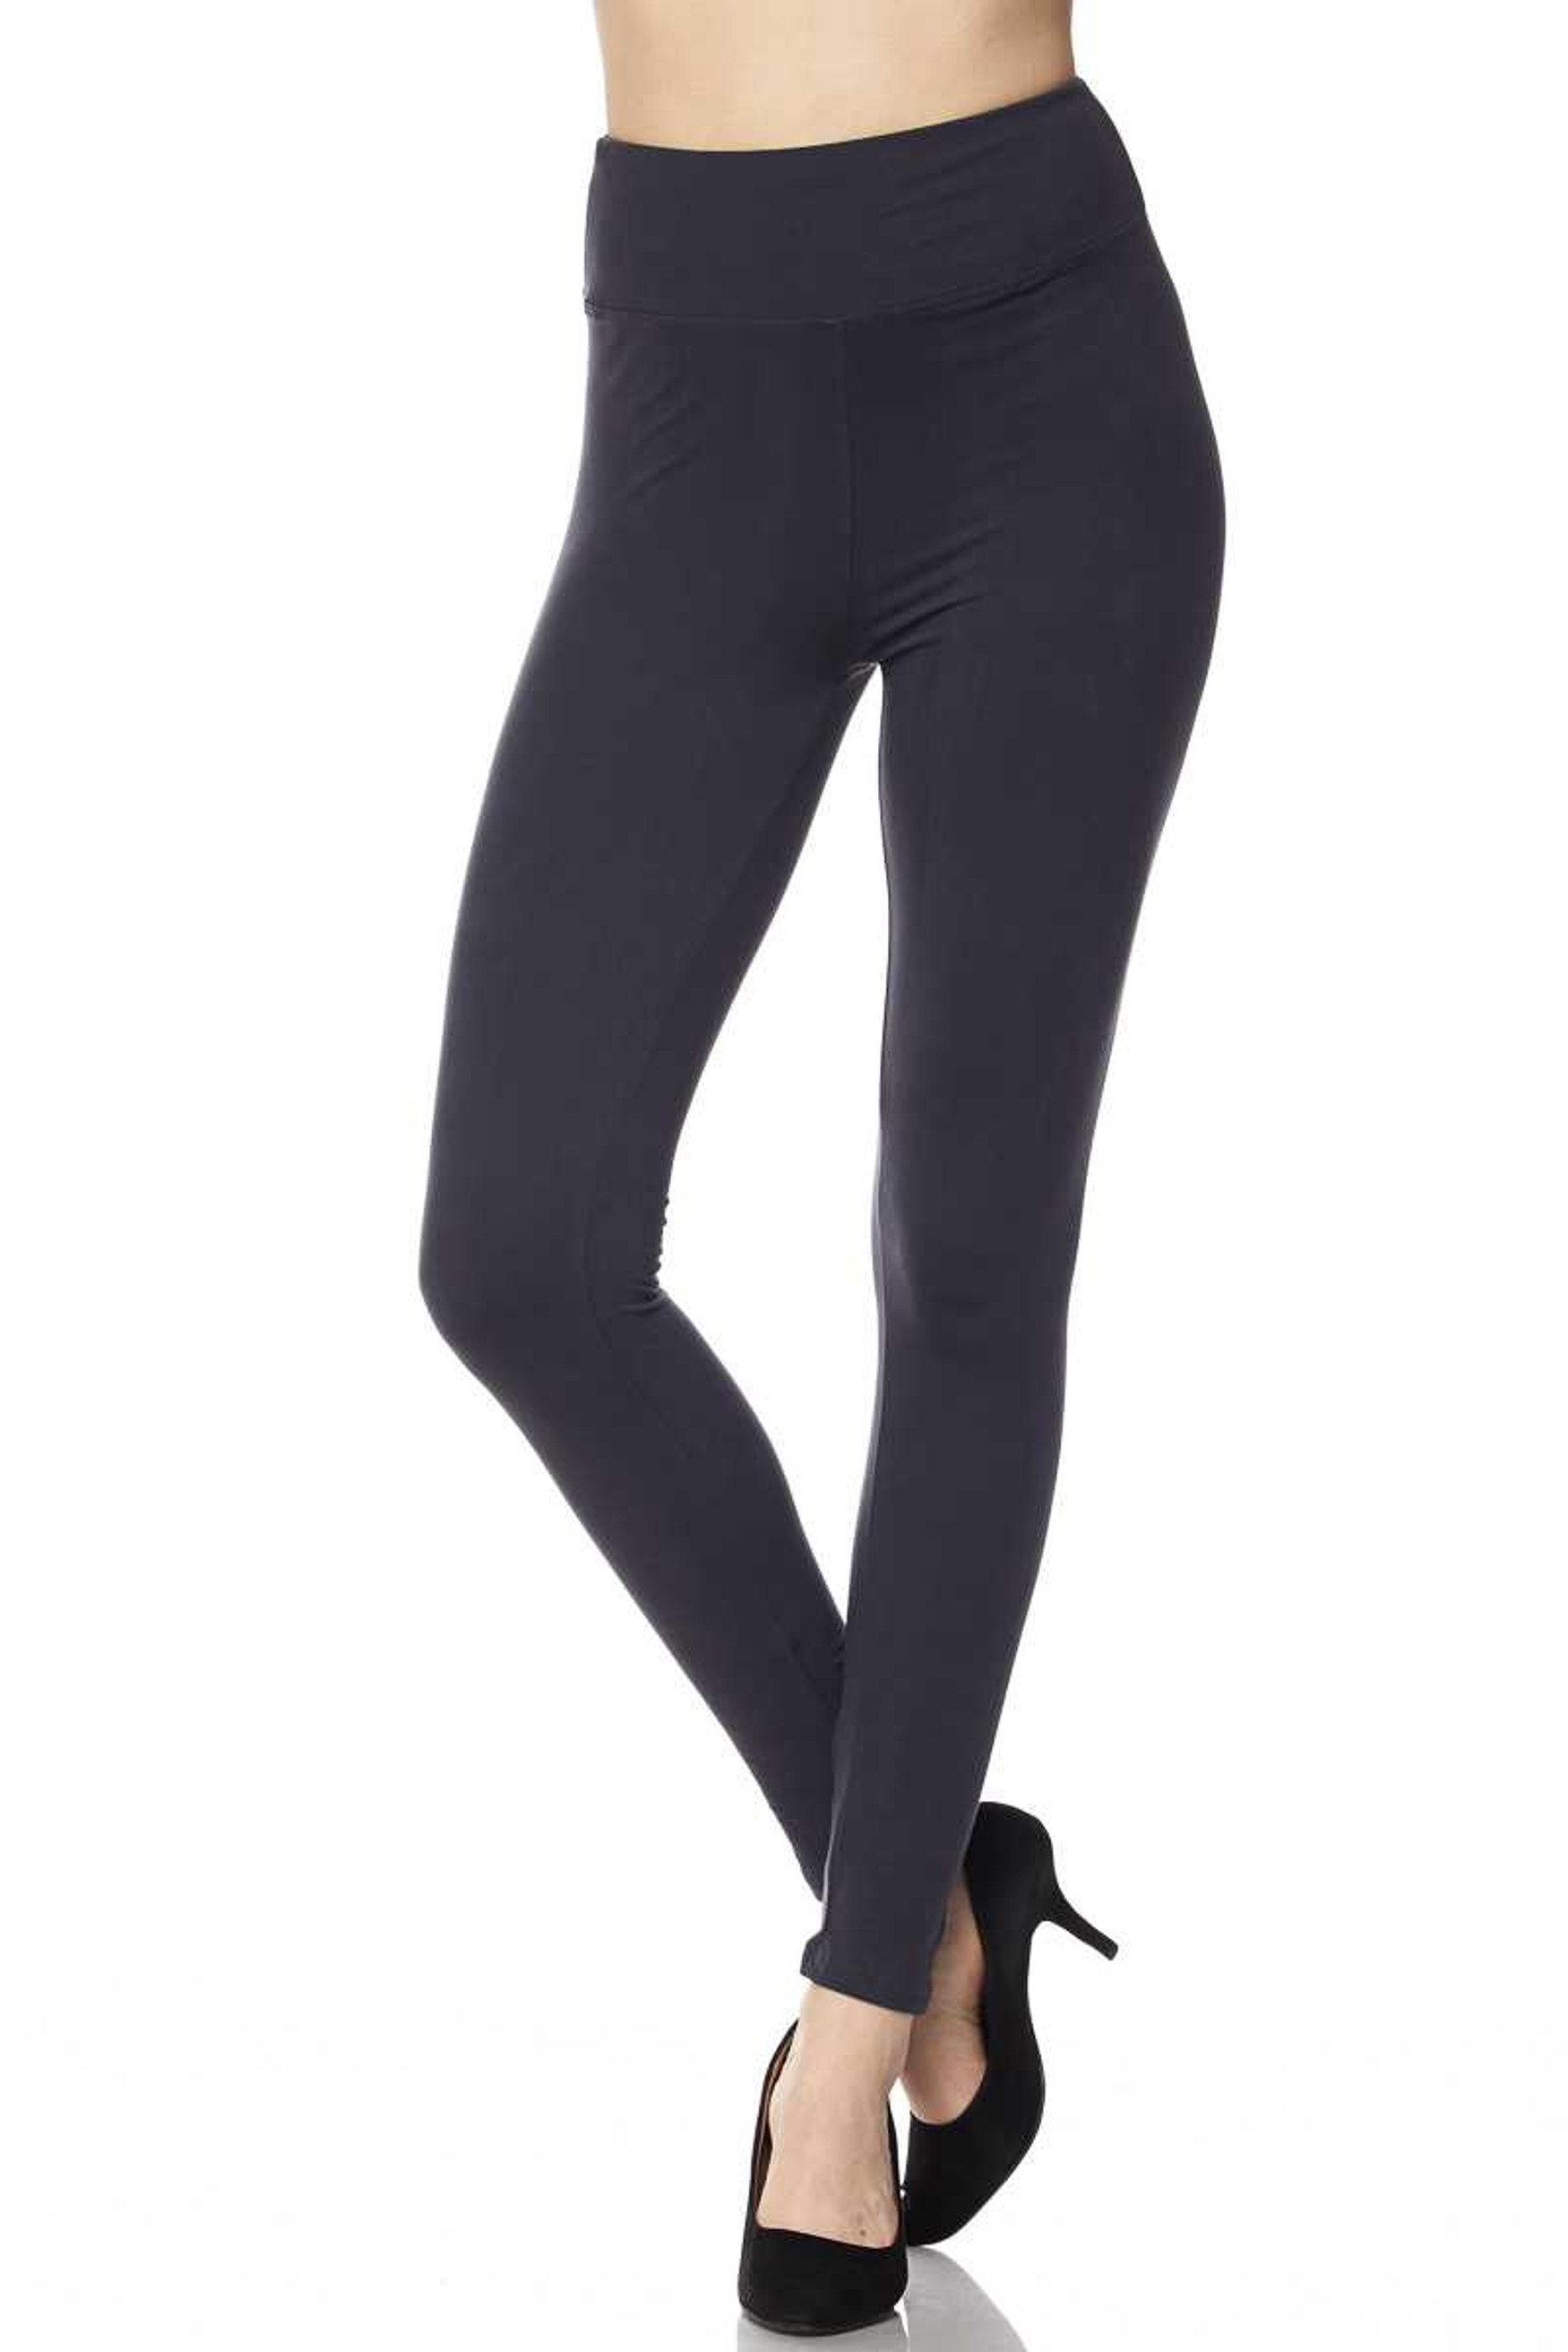 Buttery Soft Basic Solid High Waisted Extra Plus Size Leggings - 3X-5X - New Mix